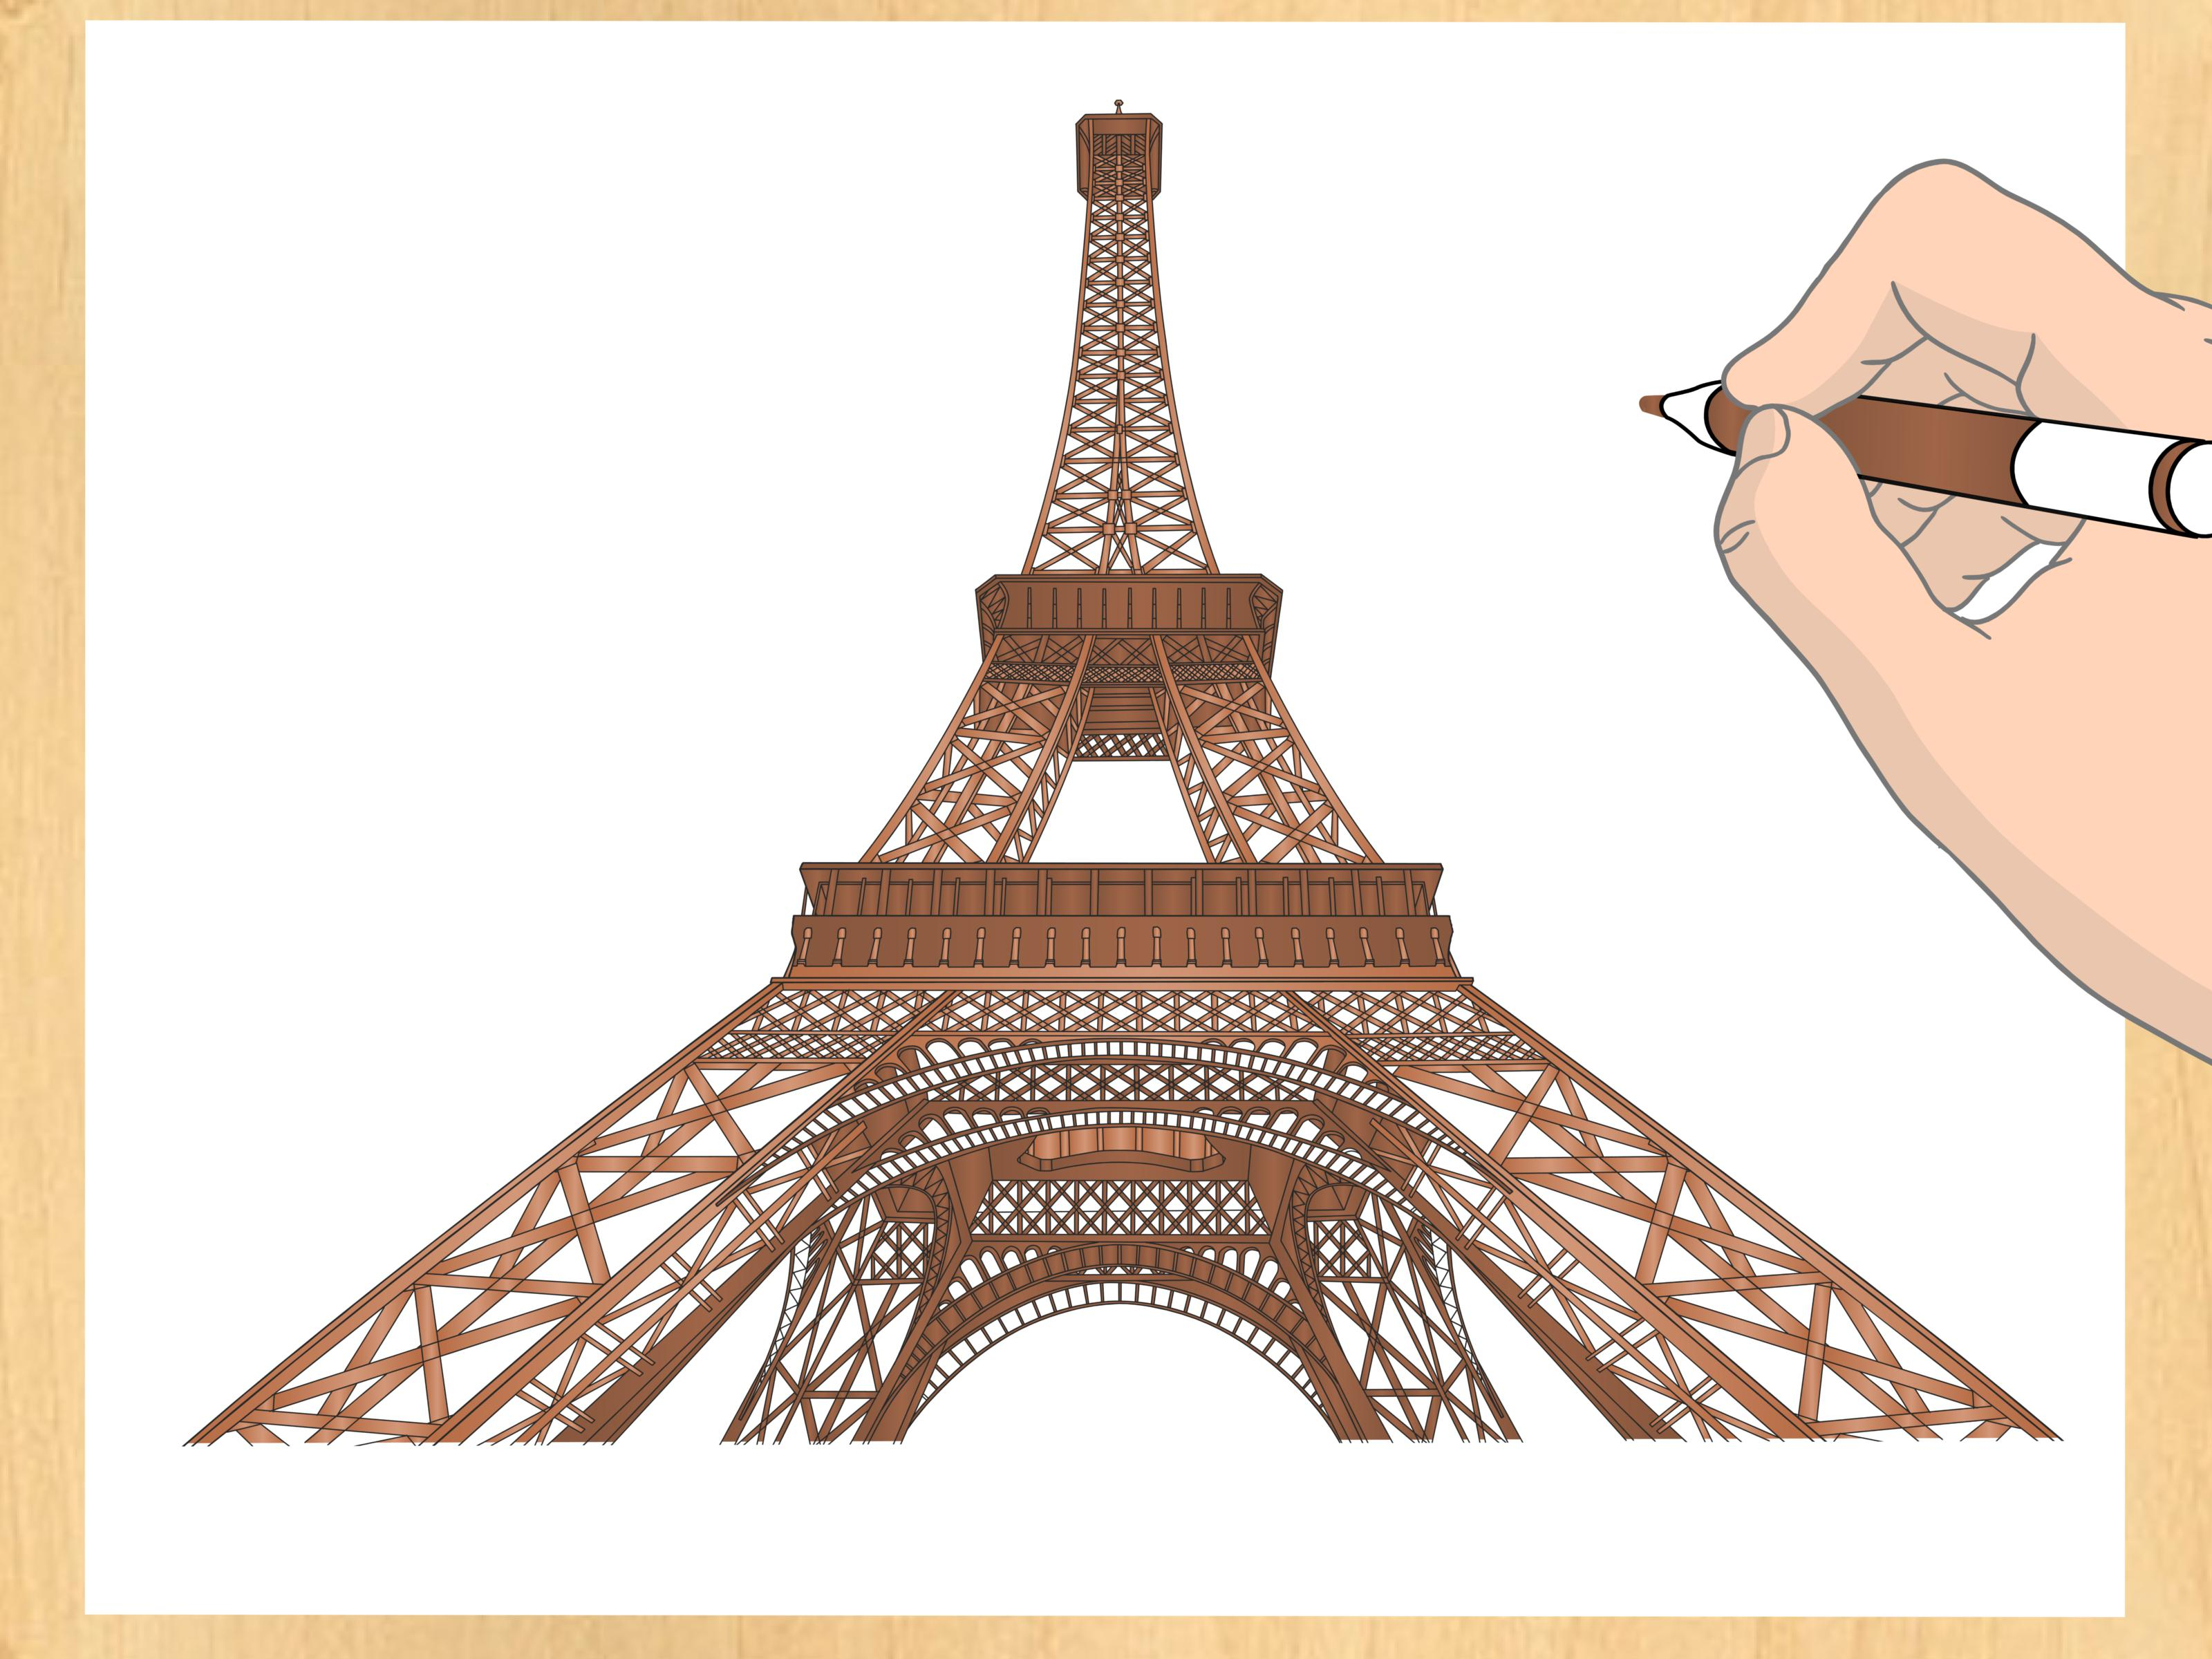 3200x2400 Eiffel Tower 2d Drawing How To Draw The Eiffel Tower 14 Steps